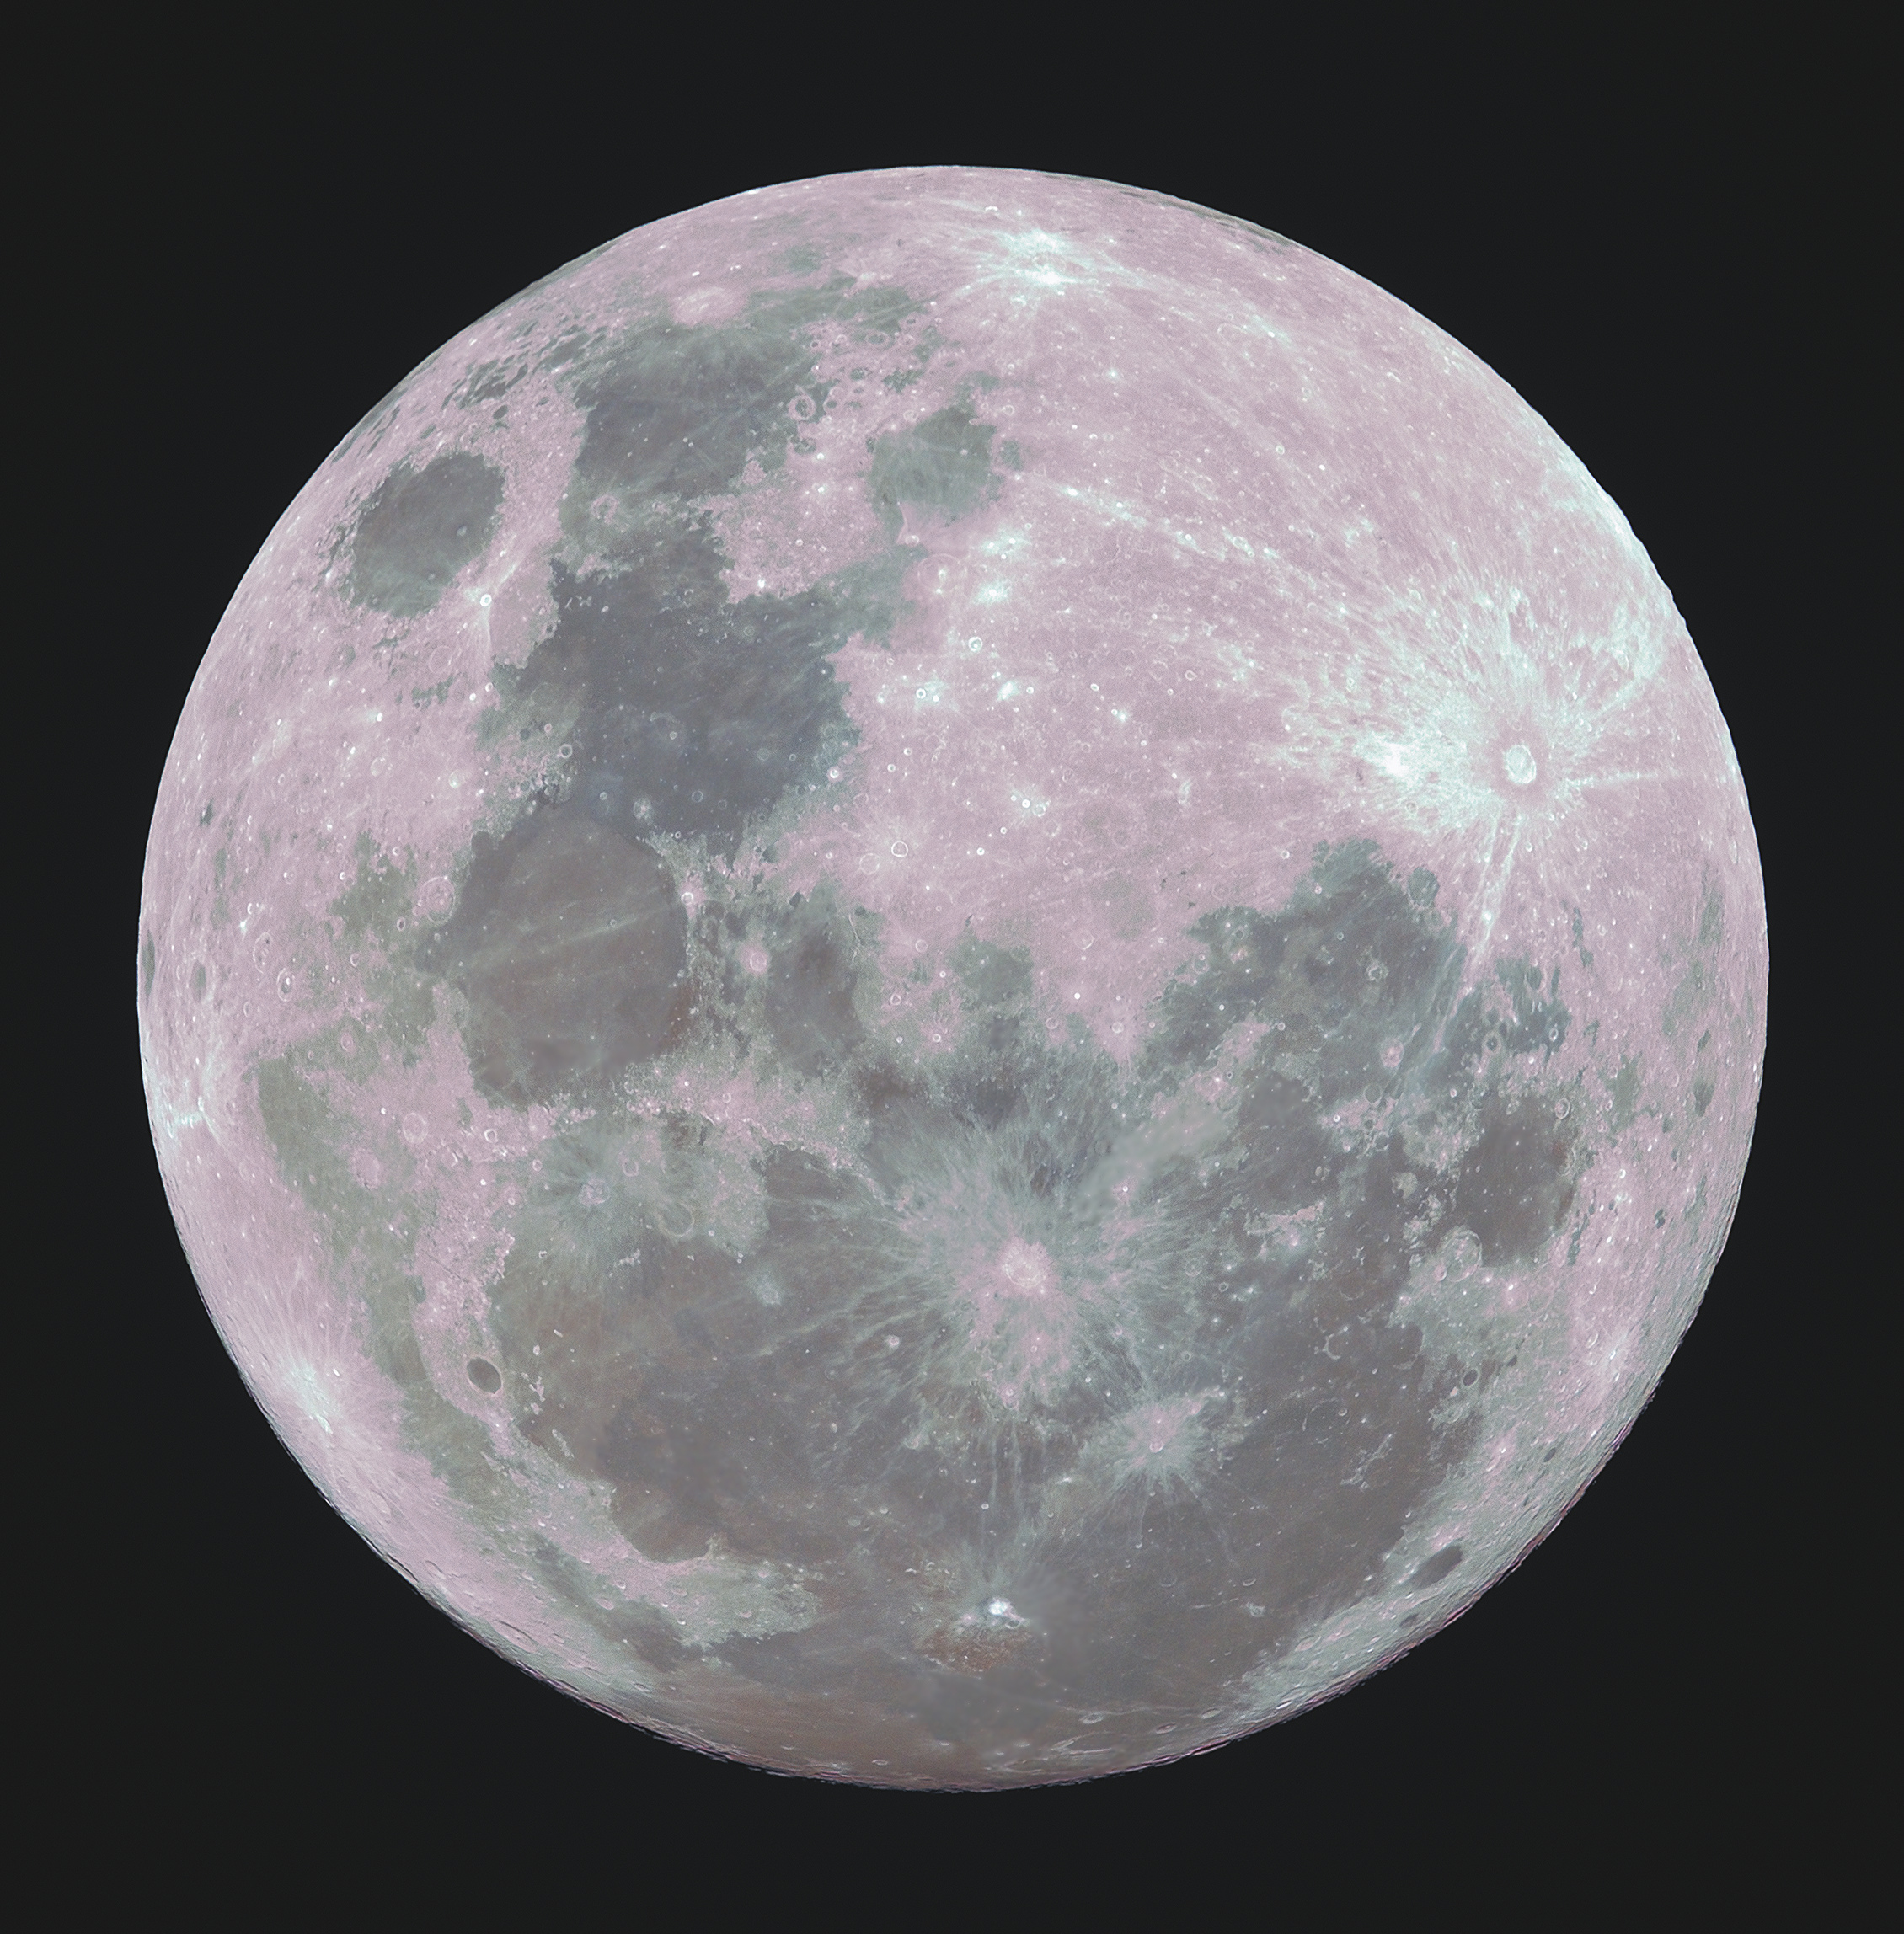 Supermoon Full Wolf Moon Janvier 2018.jpg